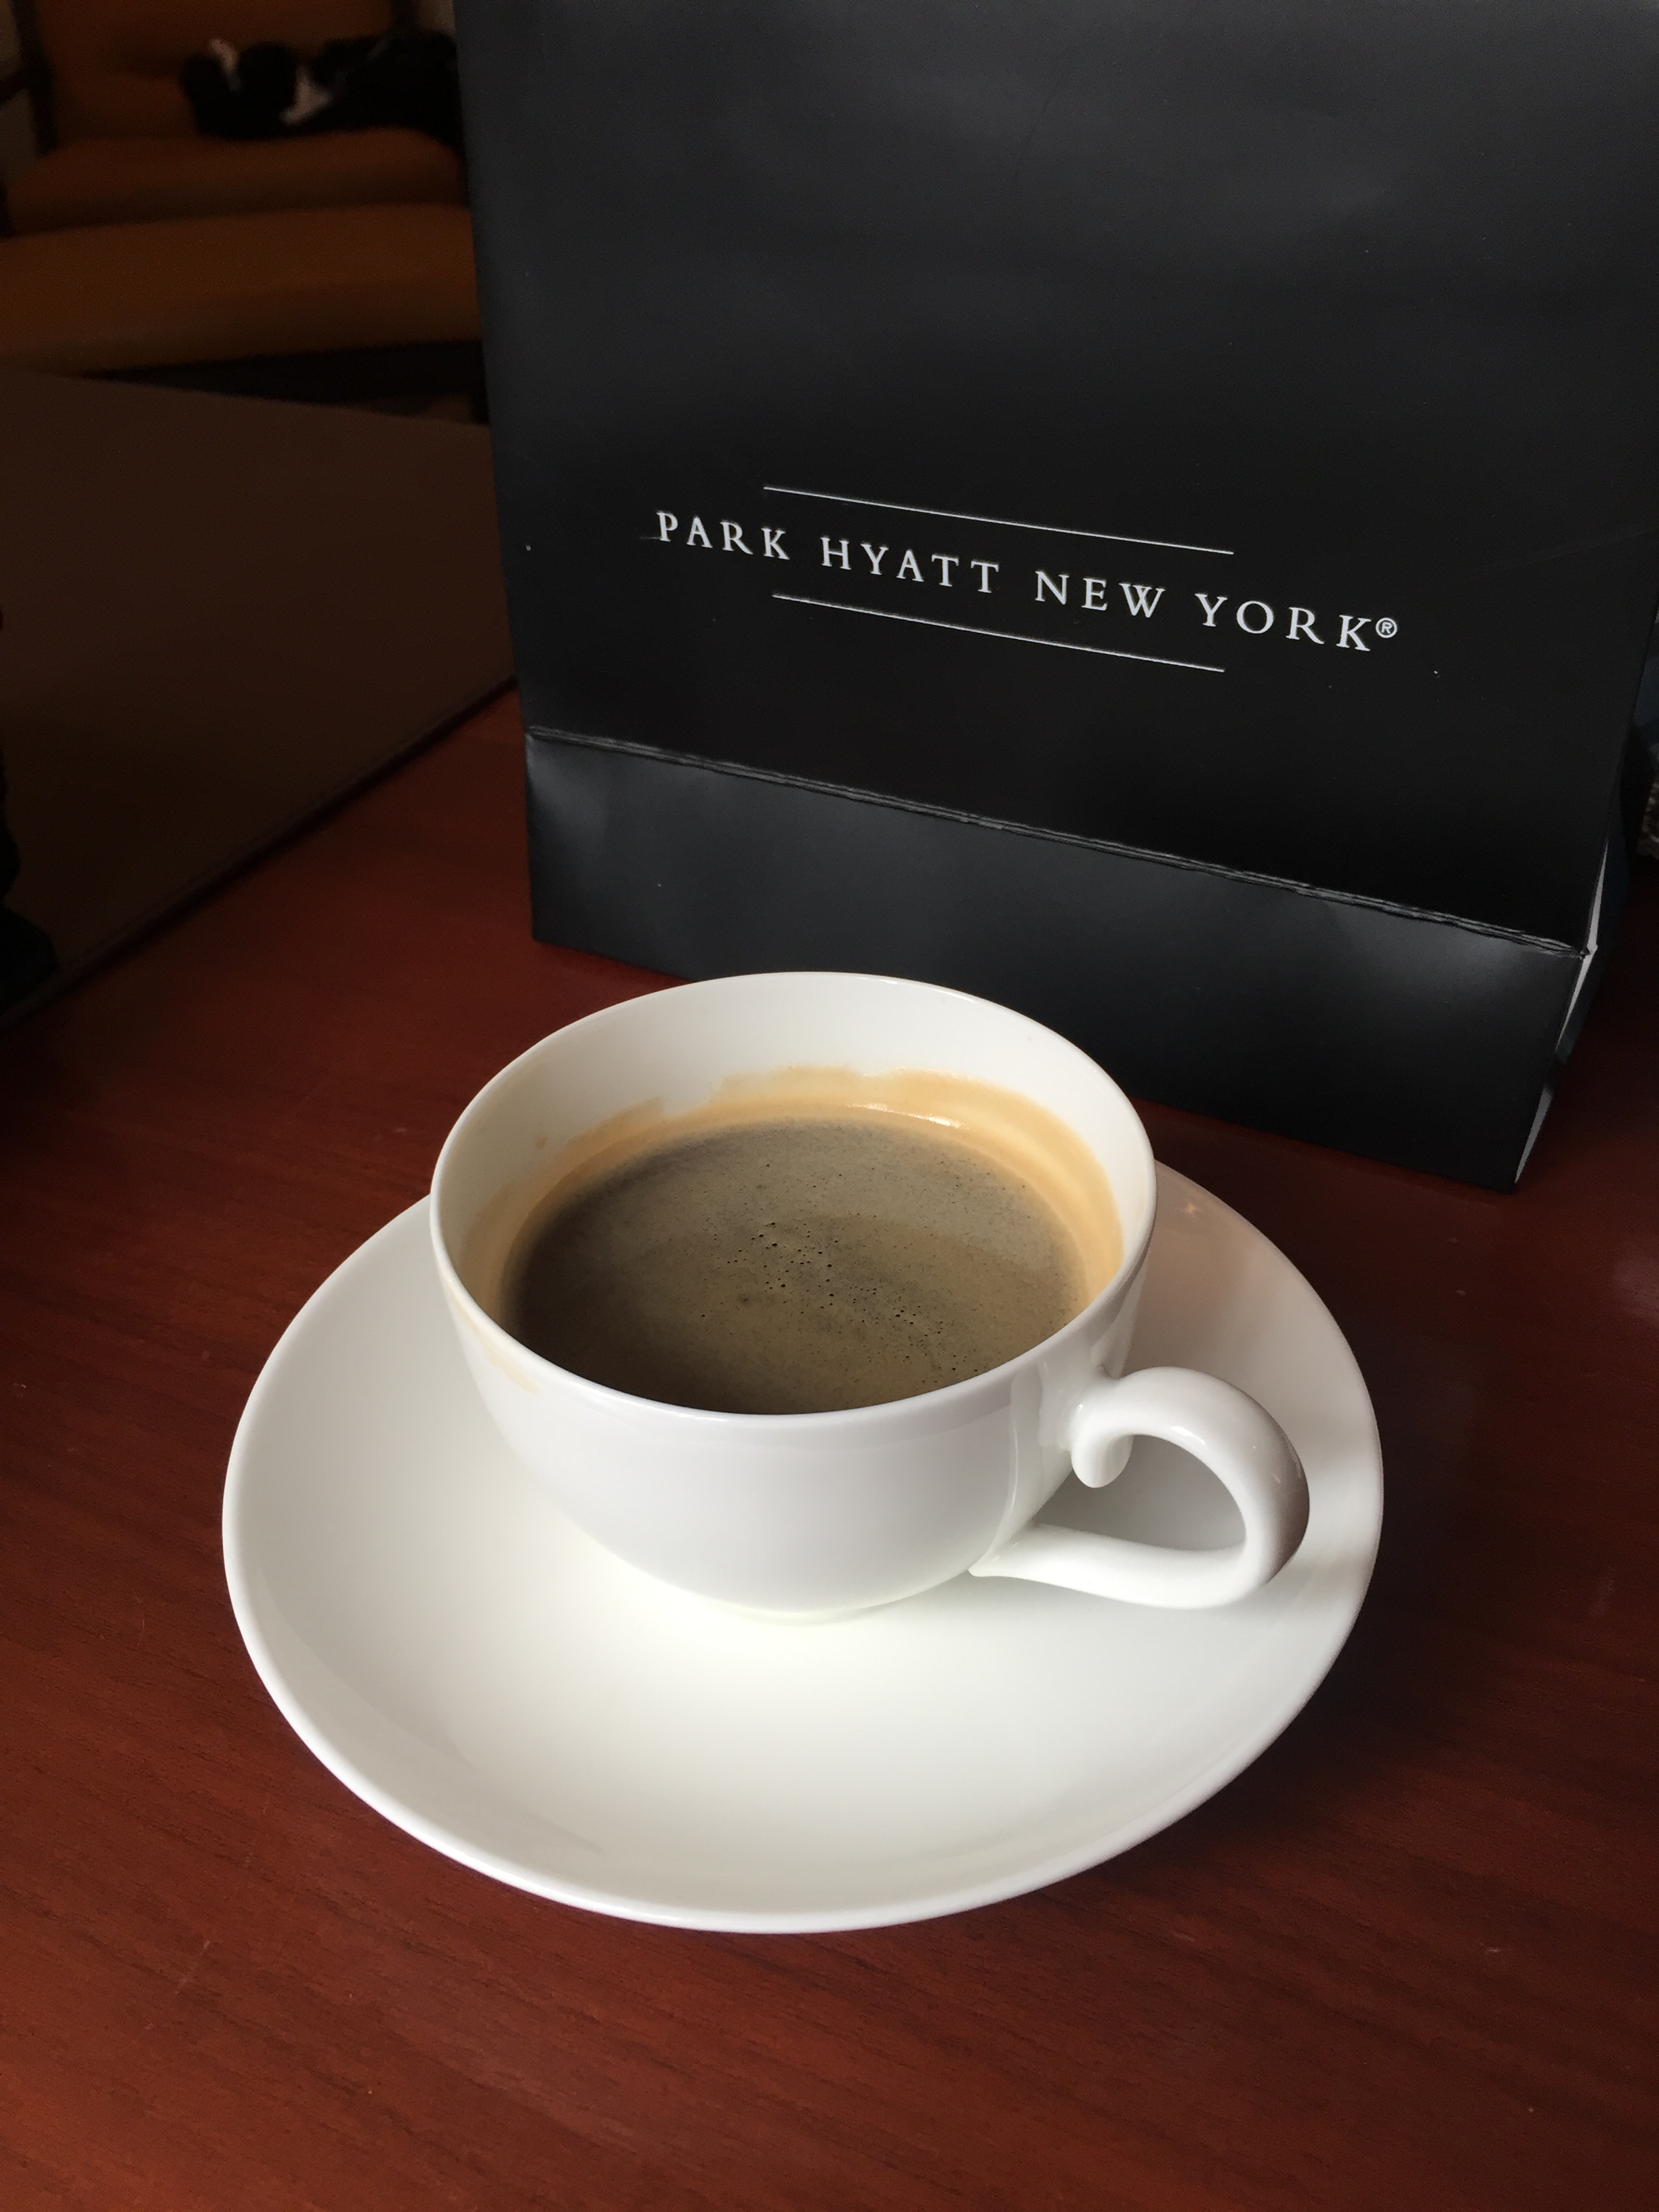 Park Hyatt New York Nespresso